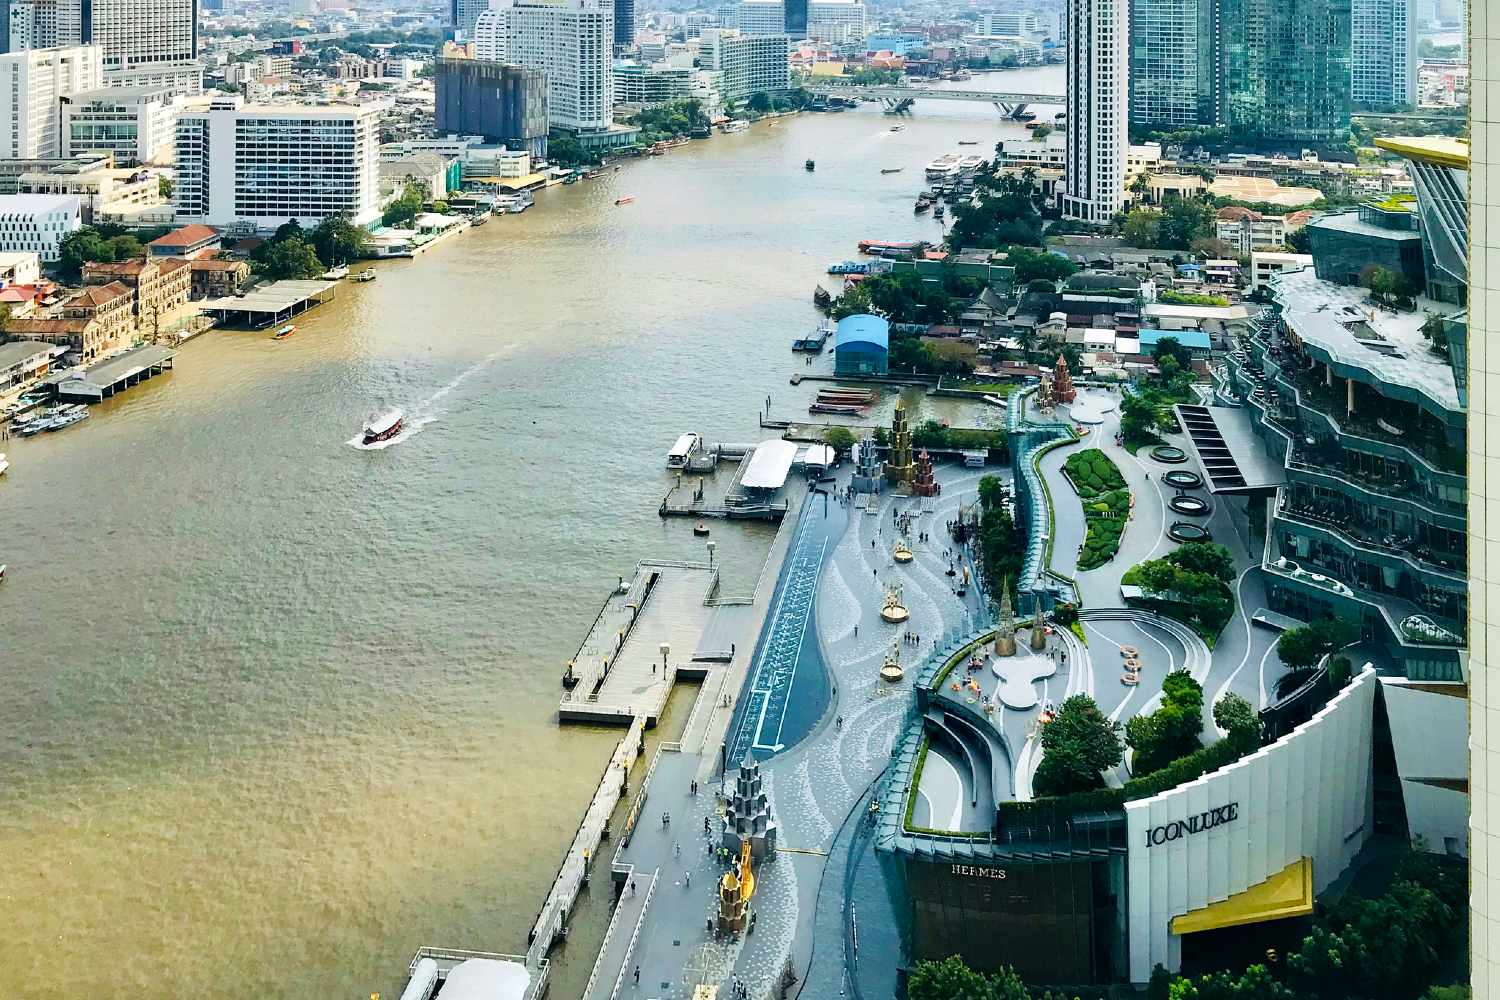 ICONSIAM seen from above with its squares overlooking the Chao Phraya River in Bangkok